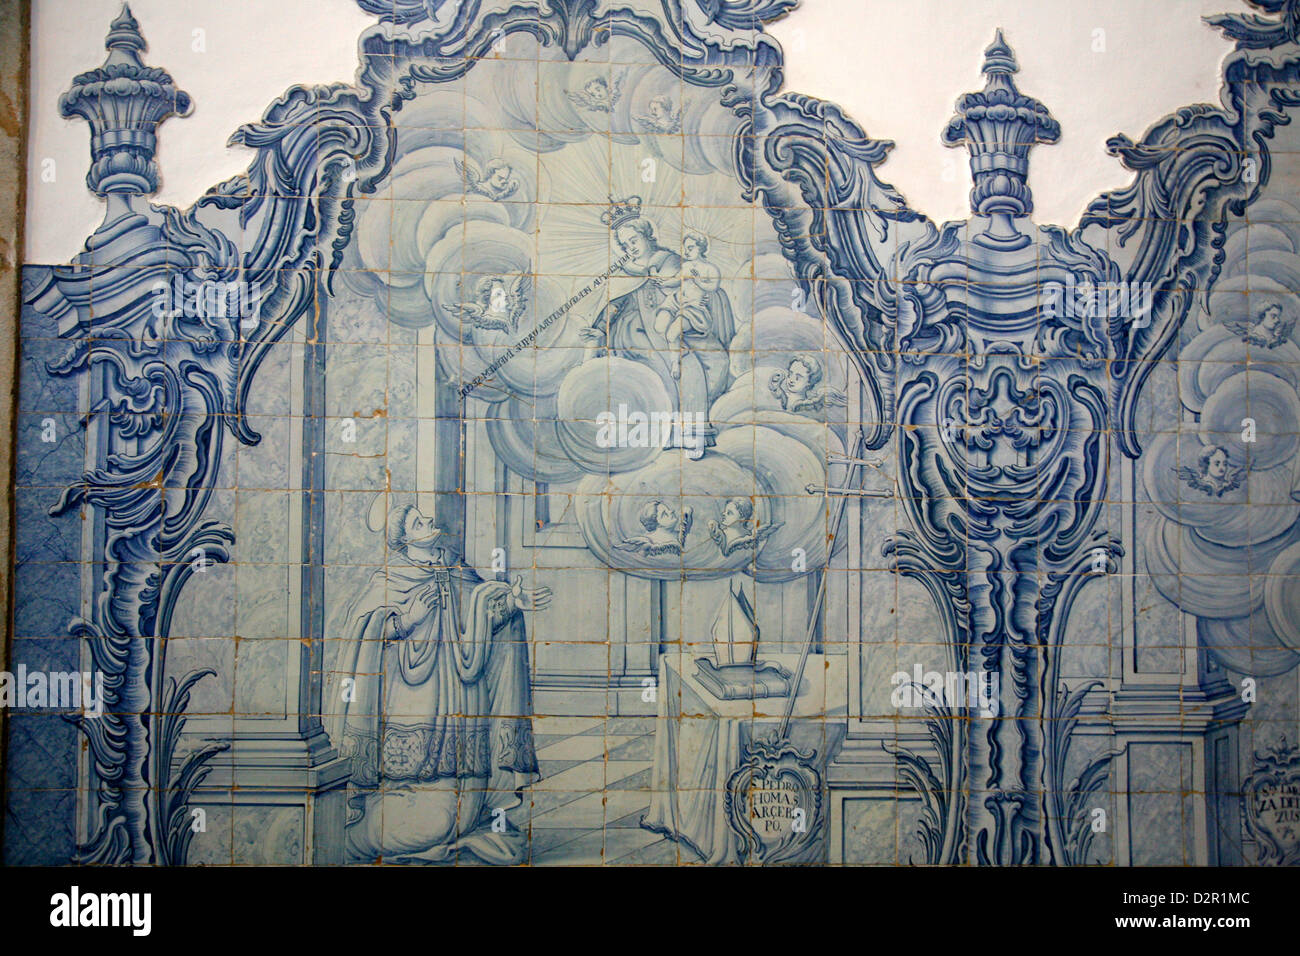 18th century Portuguese tile decoration at the Igreja de Nossa Senhora do Carmo church, Ouro Preto, Minas Gerais, - Stock Image